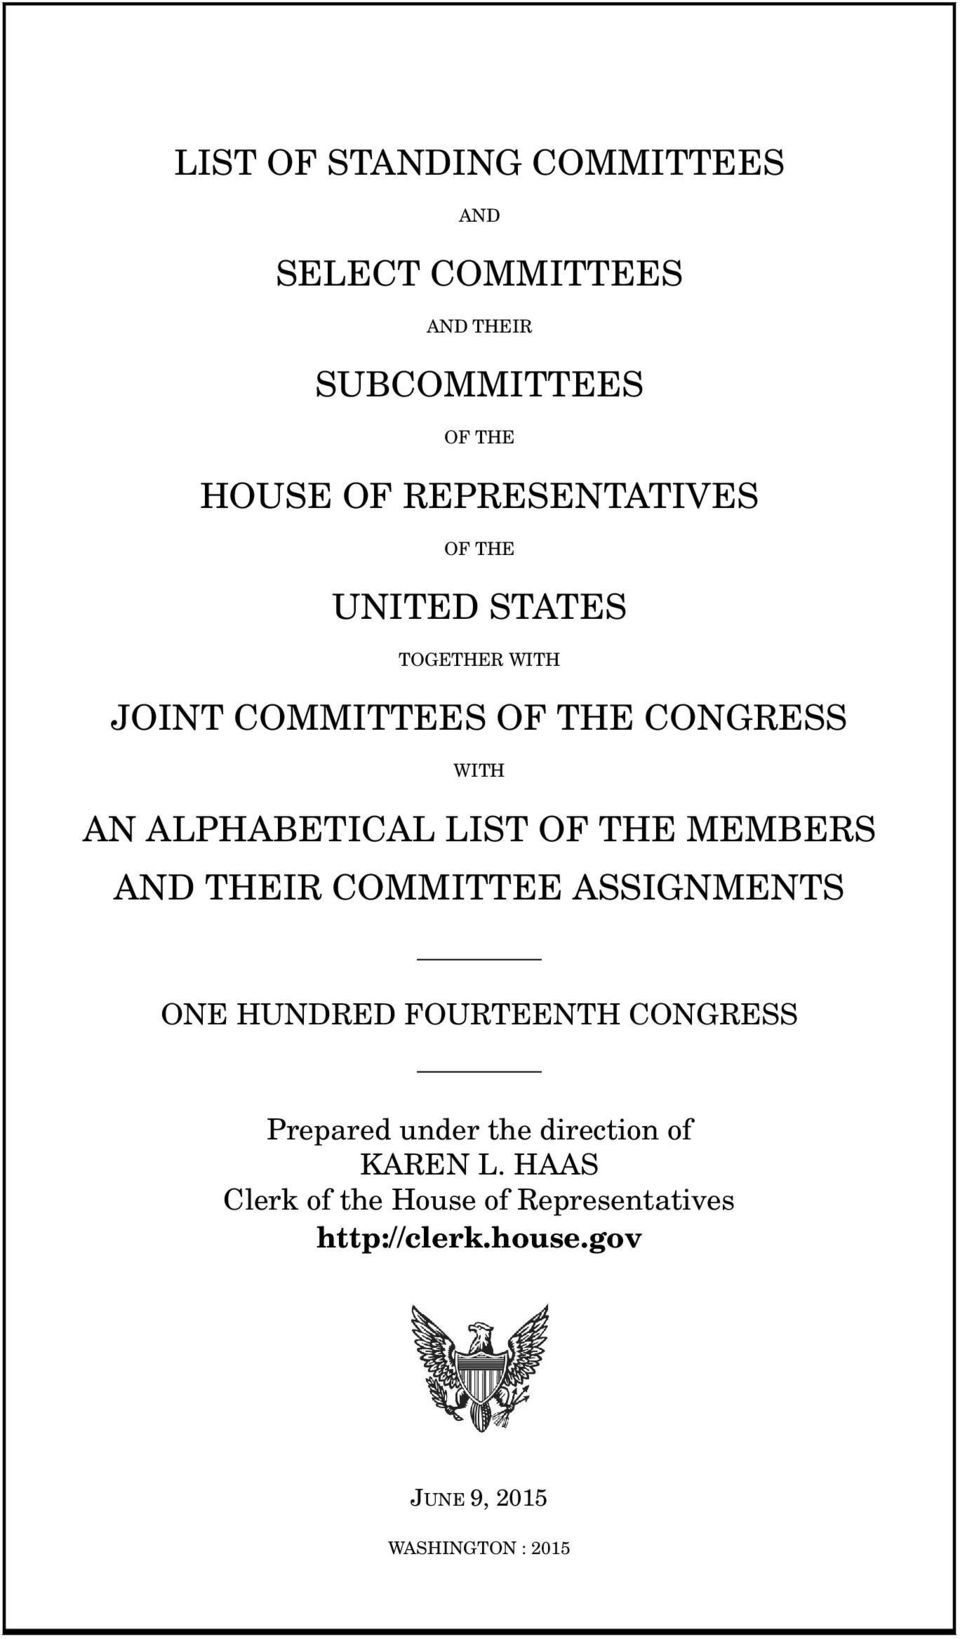 ALPHABETICAL LIST OF THE MEMBERS AND THEIR COMMITTEE ASSIGNMENTS ONE HUNDRED FOURTEENTH CONGRESS